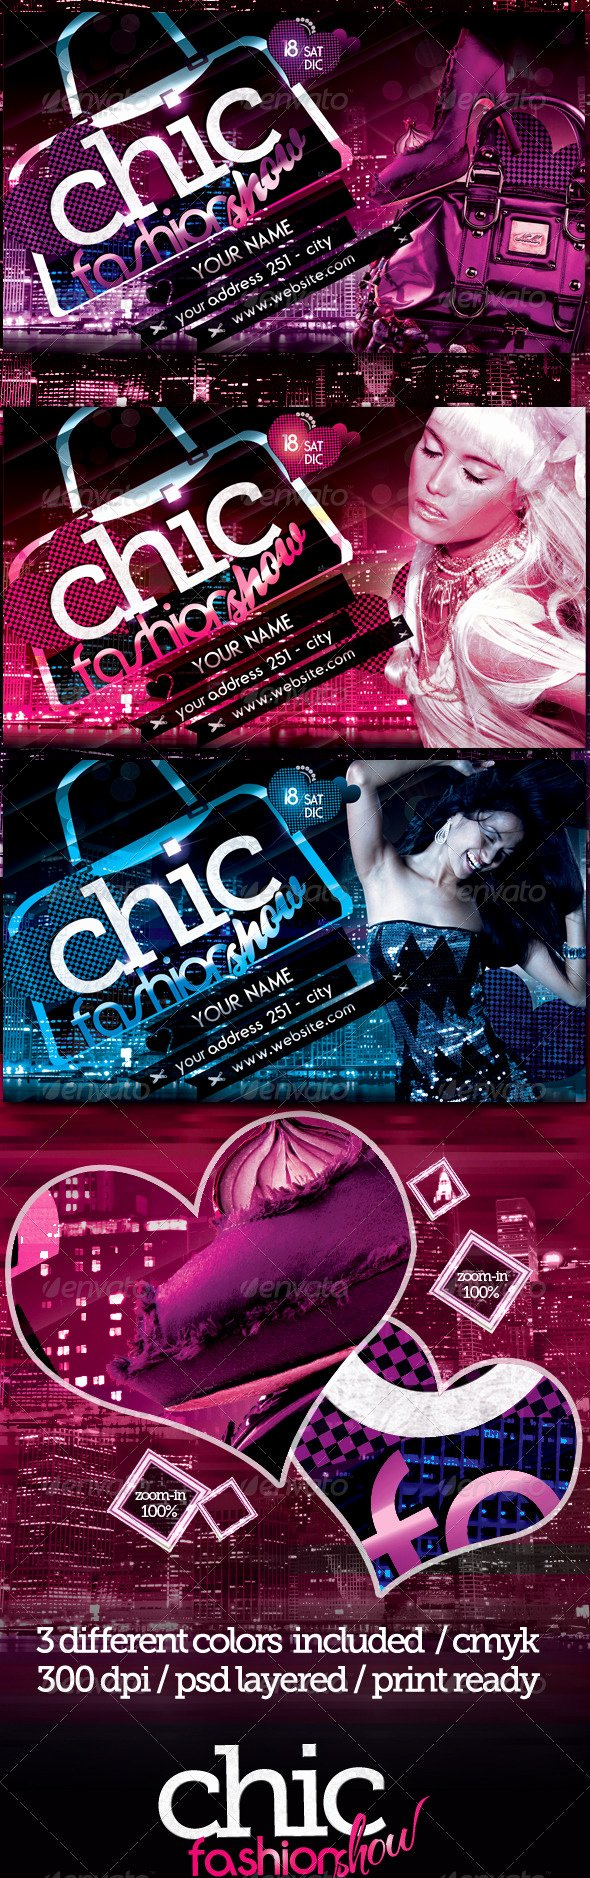 Fashion Show Flyers Templates Fresh Chic Fashion Show Flyer Template by touringxx